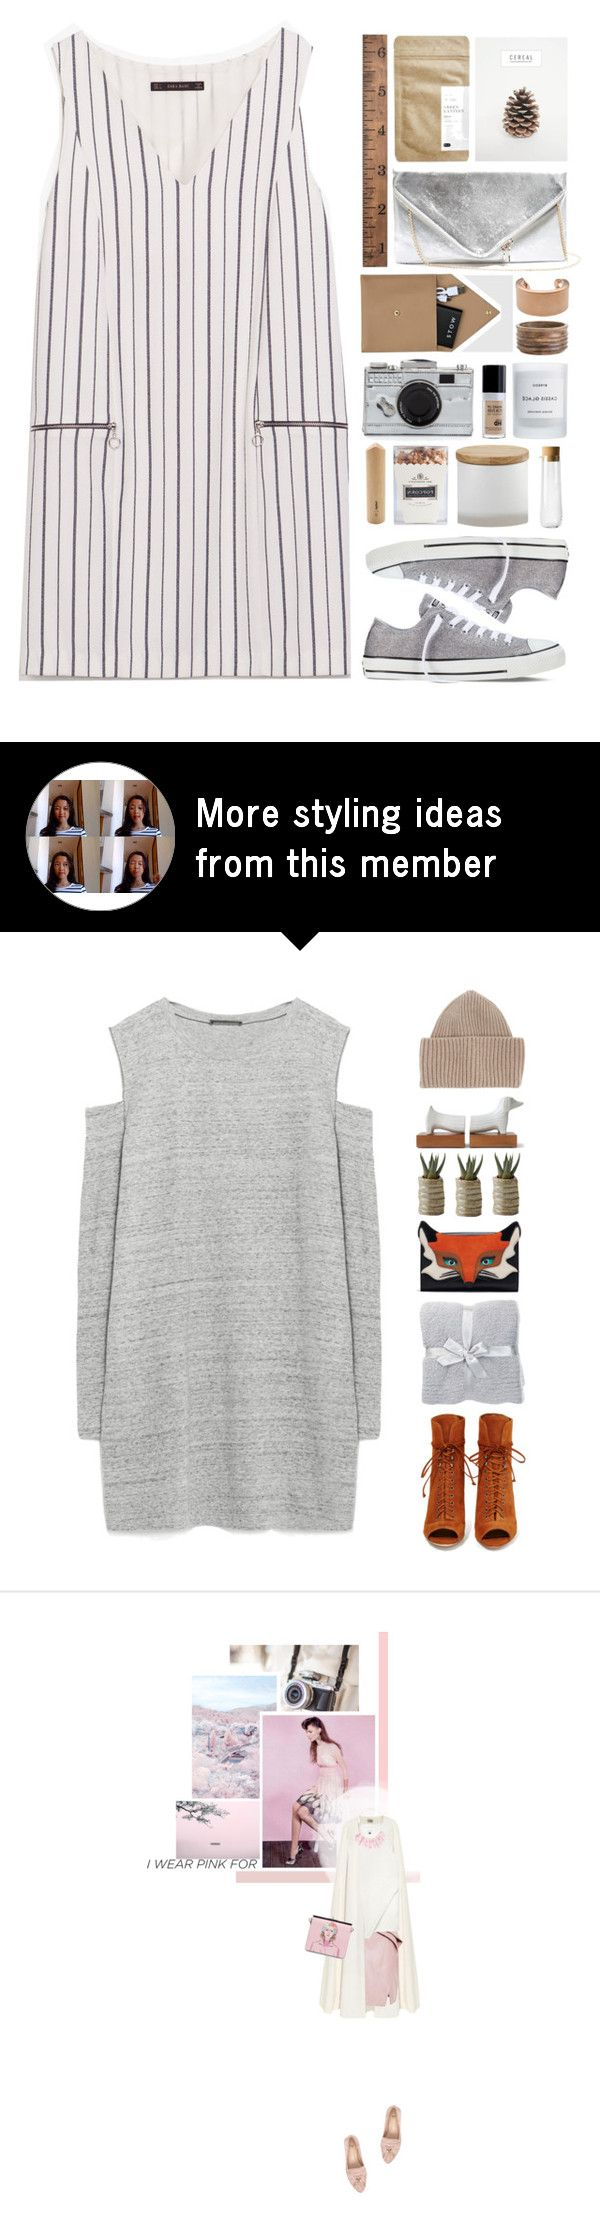 """a little mix and match"" by annisaamara on Polyvore featuring Zara, Paper & Tea, GUESS, Converse, Maison Margiela, STOW, Byredo, Kate Spade, CB2 and Barclay Butera"